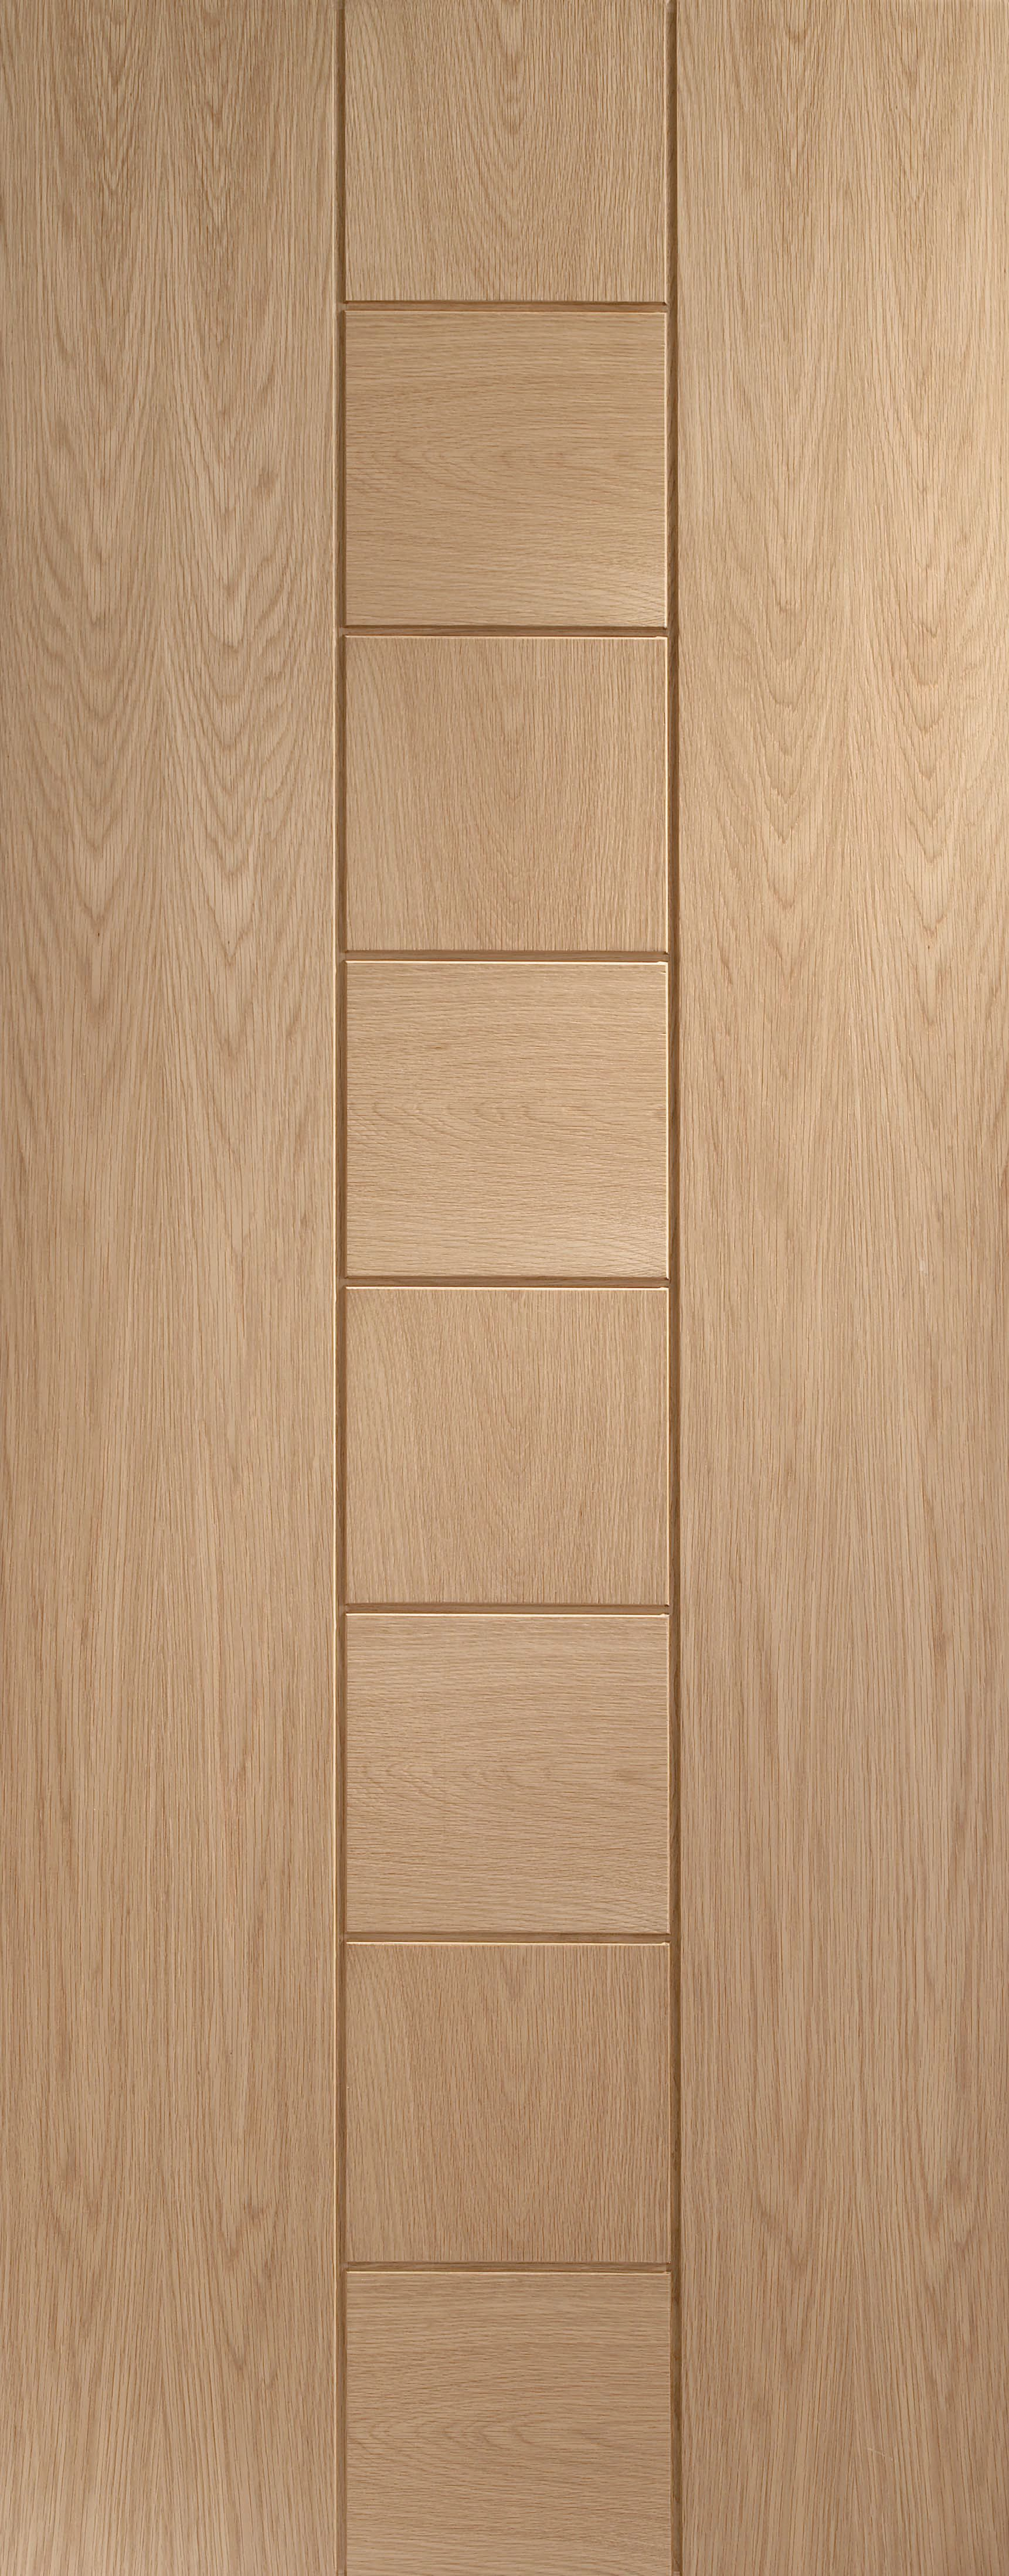 Xl Joinery Messina Oak 8 Panel Internal Door   1981mm X 762mm by Wickes